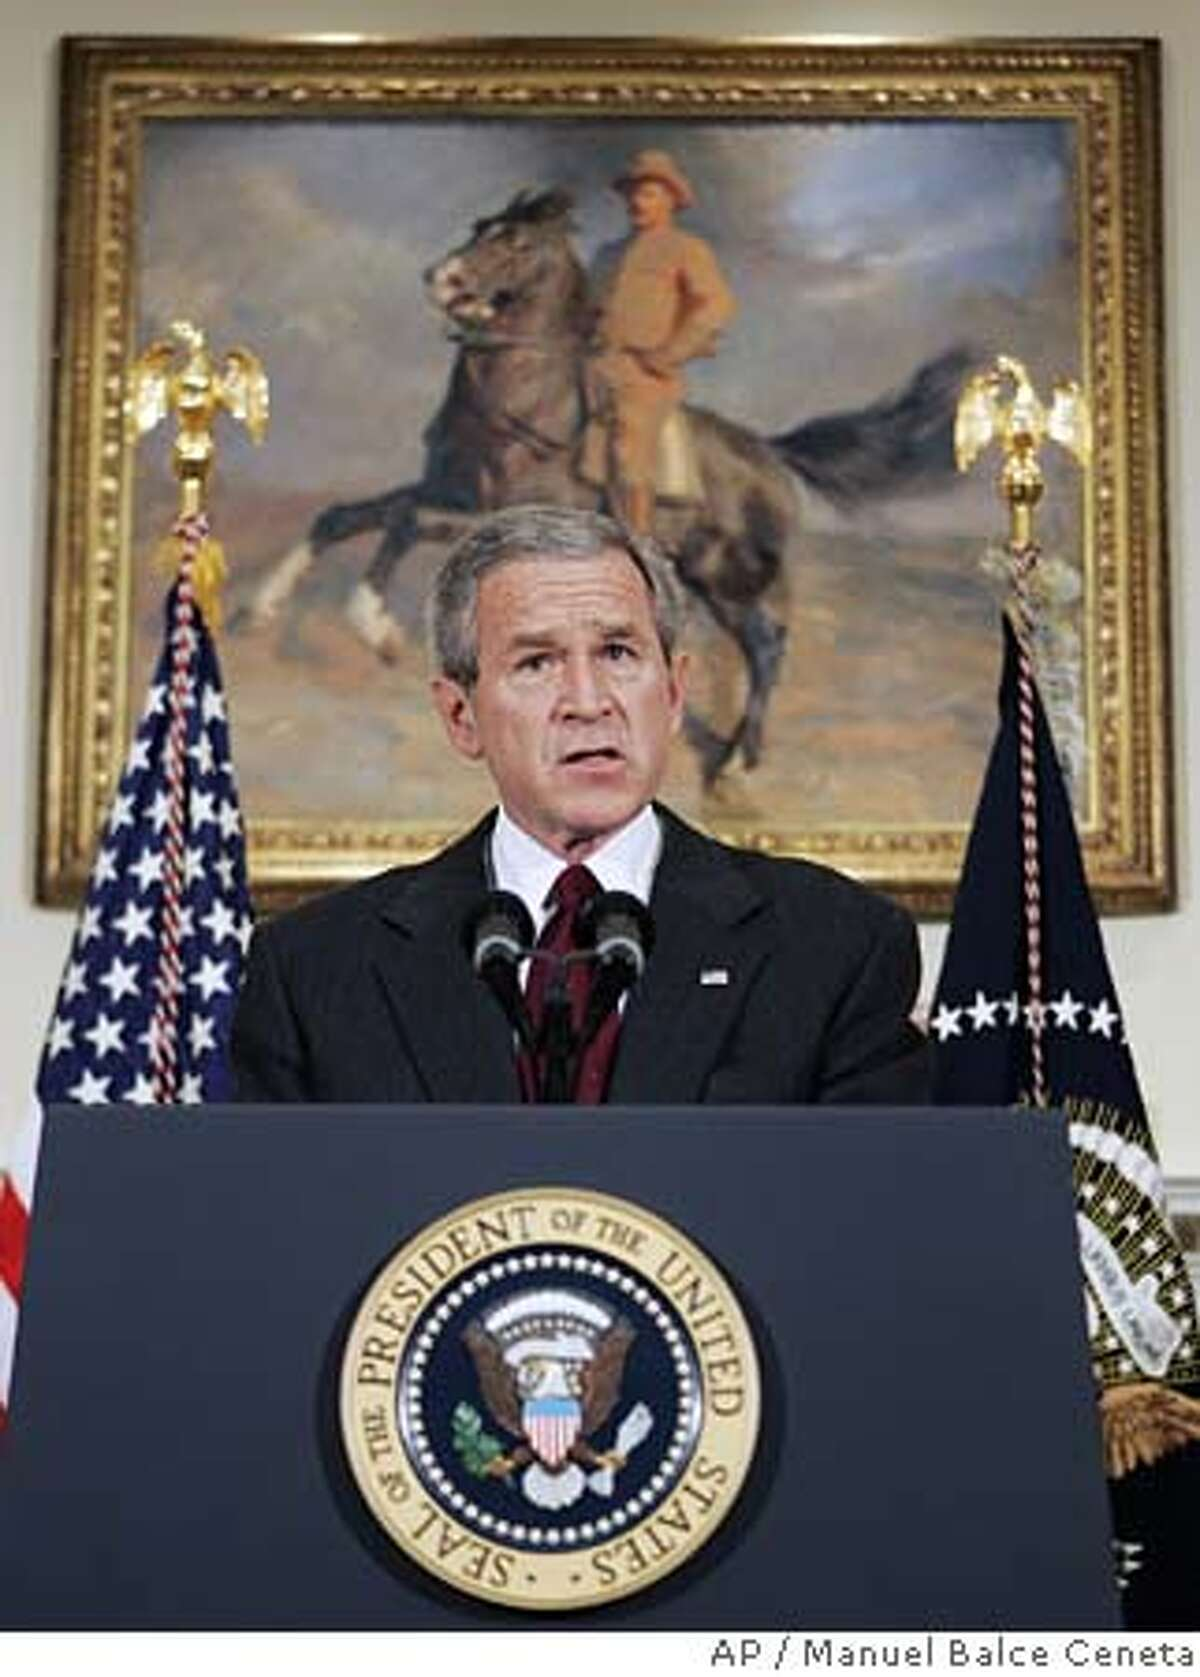 President Bush delivers his live radio address in the Roosevelt Room at the White House, Saturday, Dec. 17, 2005 in Washington. (AP Photo/Manuel Balce Ceneta)